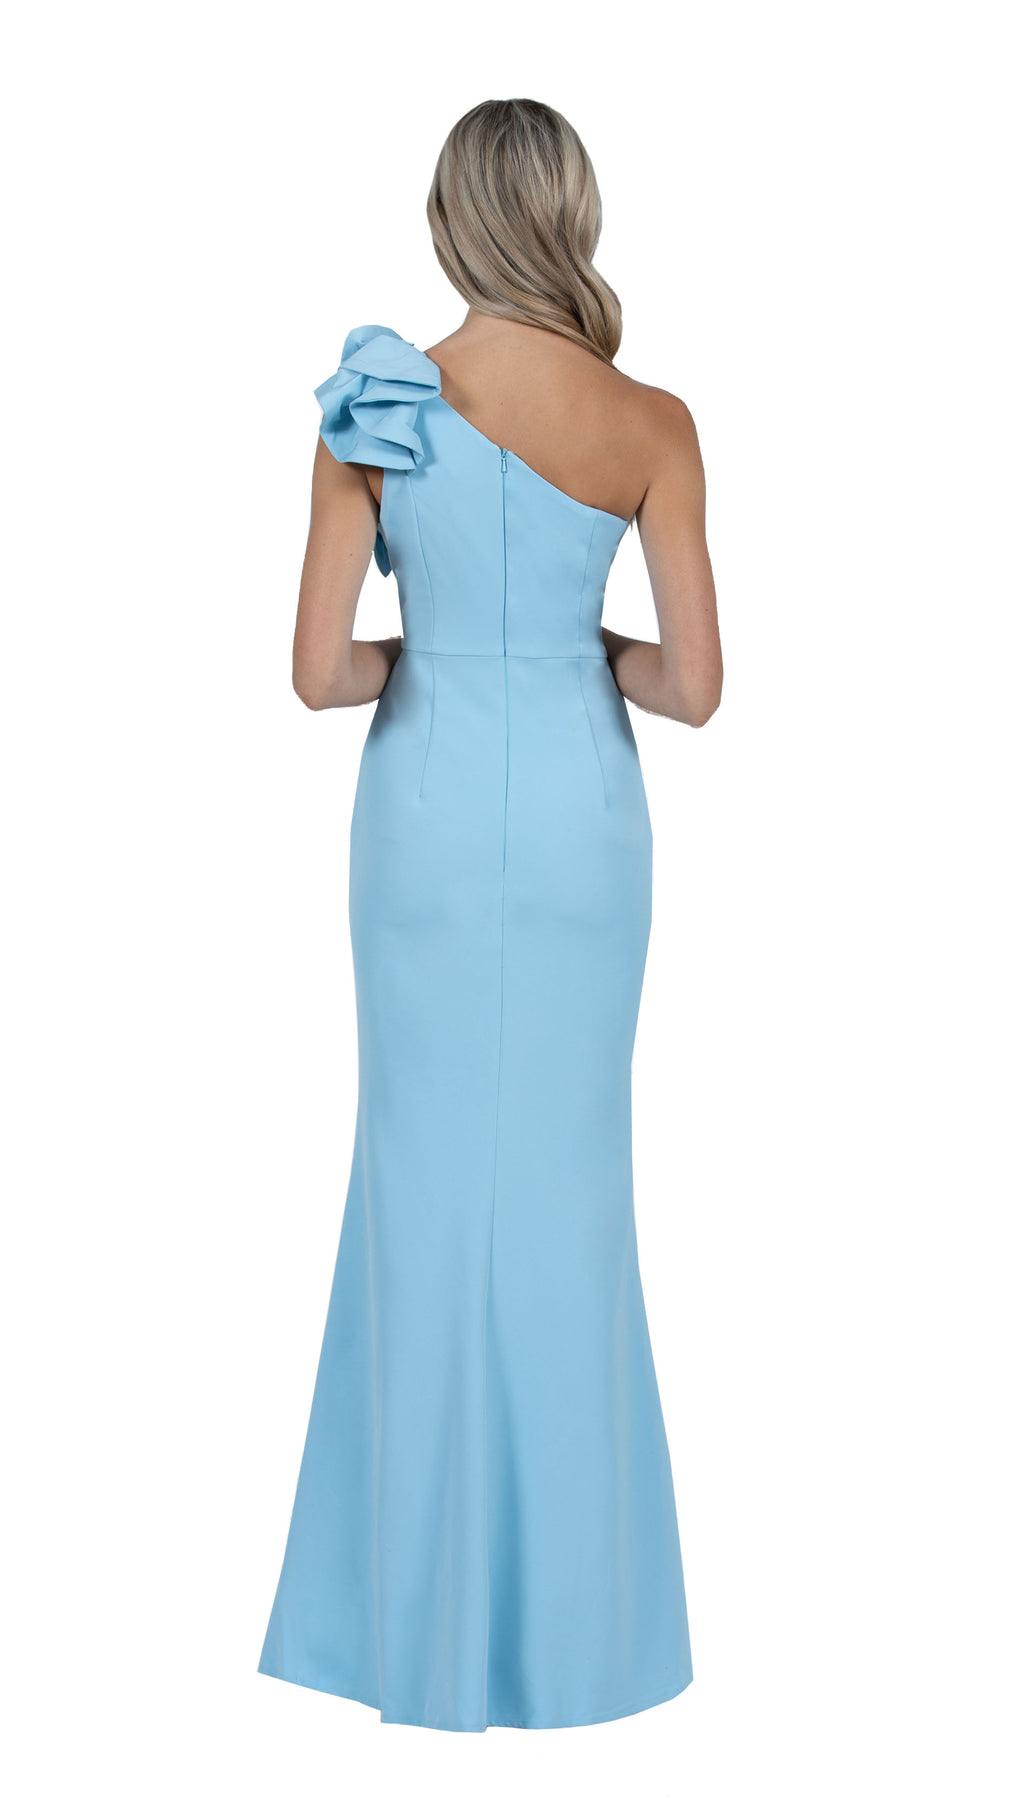 Sue Frill Gown with one shoulder in sky blue back